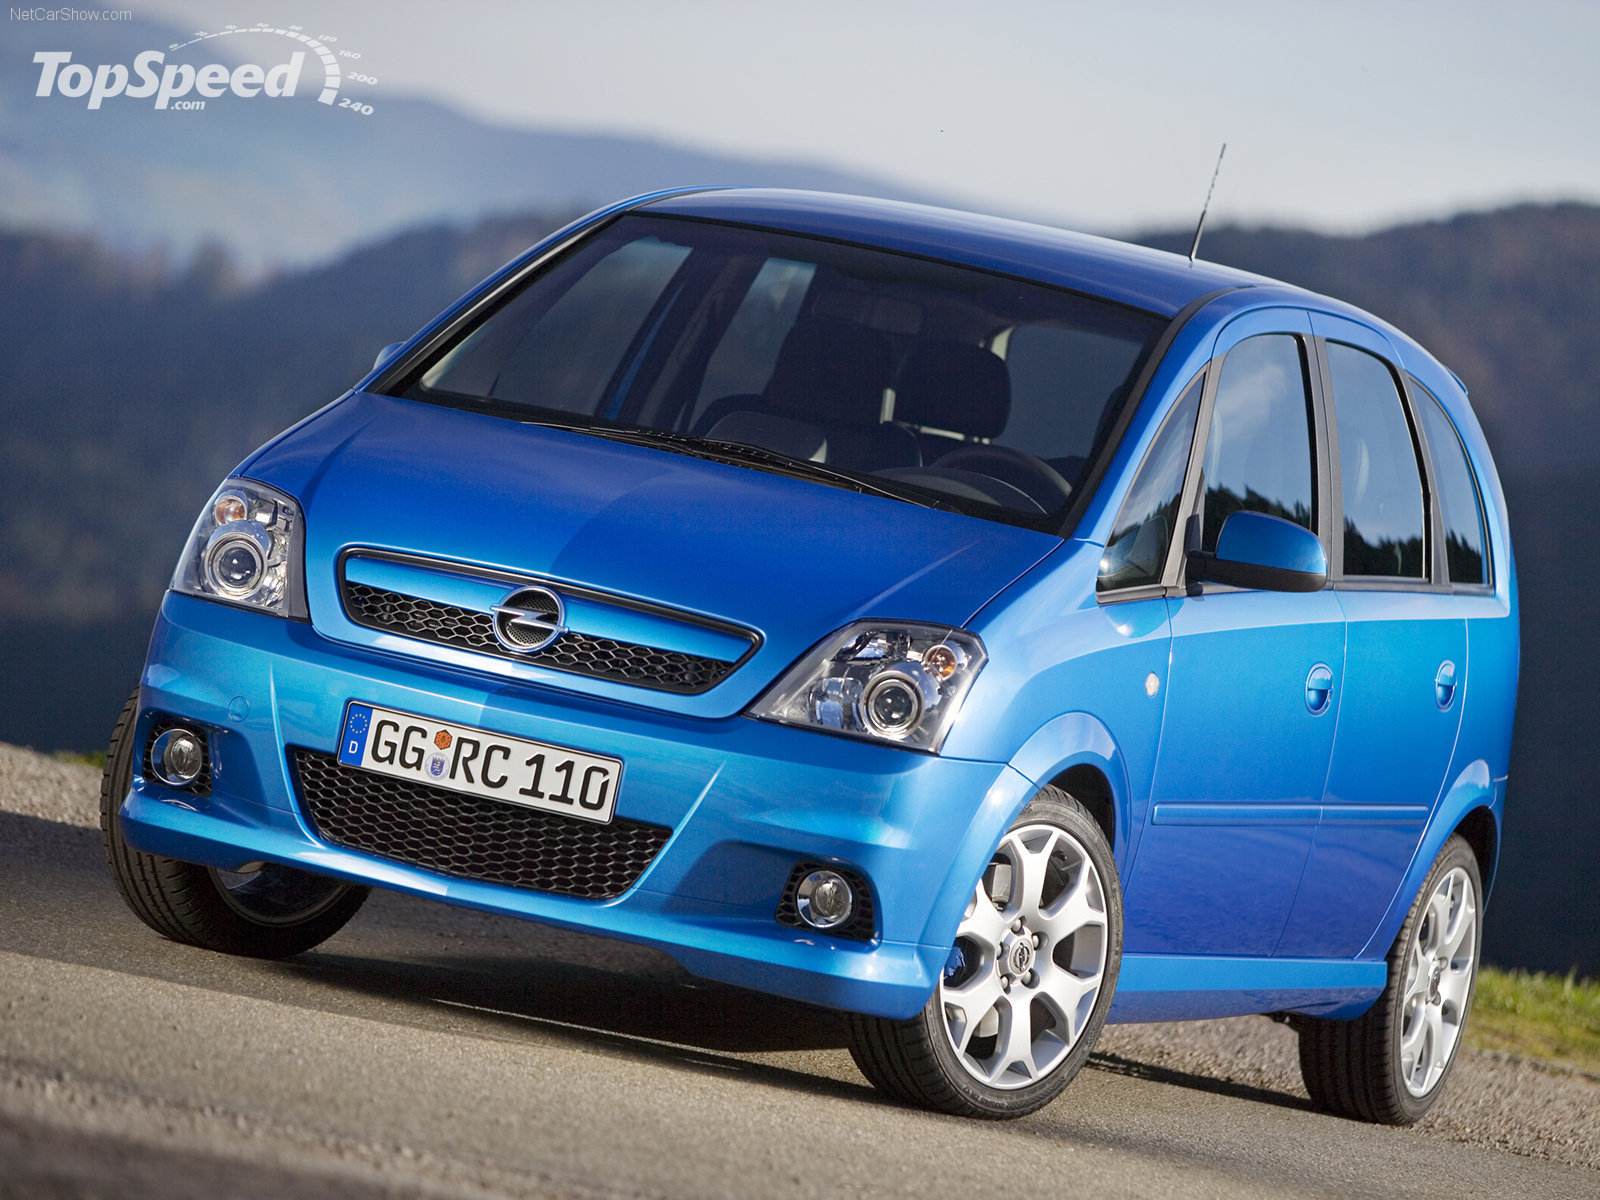 opel meriva opc 2012 cars preview and wallpaper gallery. Black Bedroom Furniture Sets. Home Design Ideas